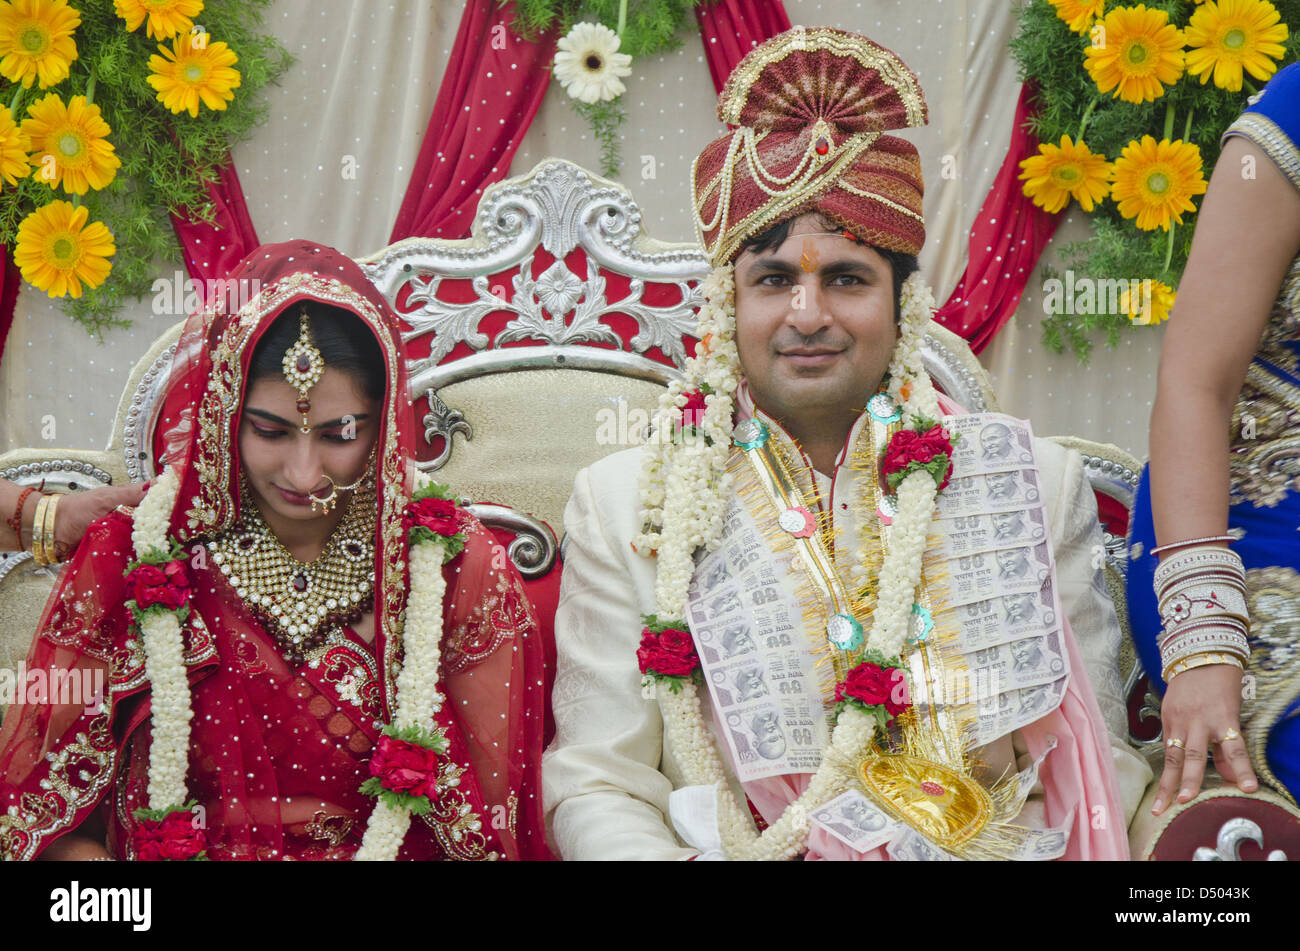 Punjabi Wedding Couple High Resolution Stock Photography And Images Alamy